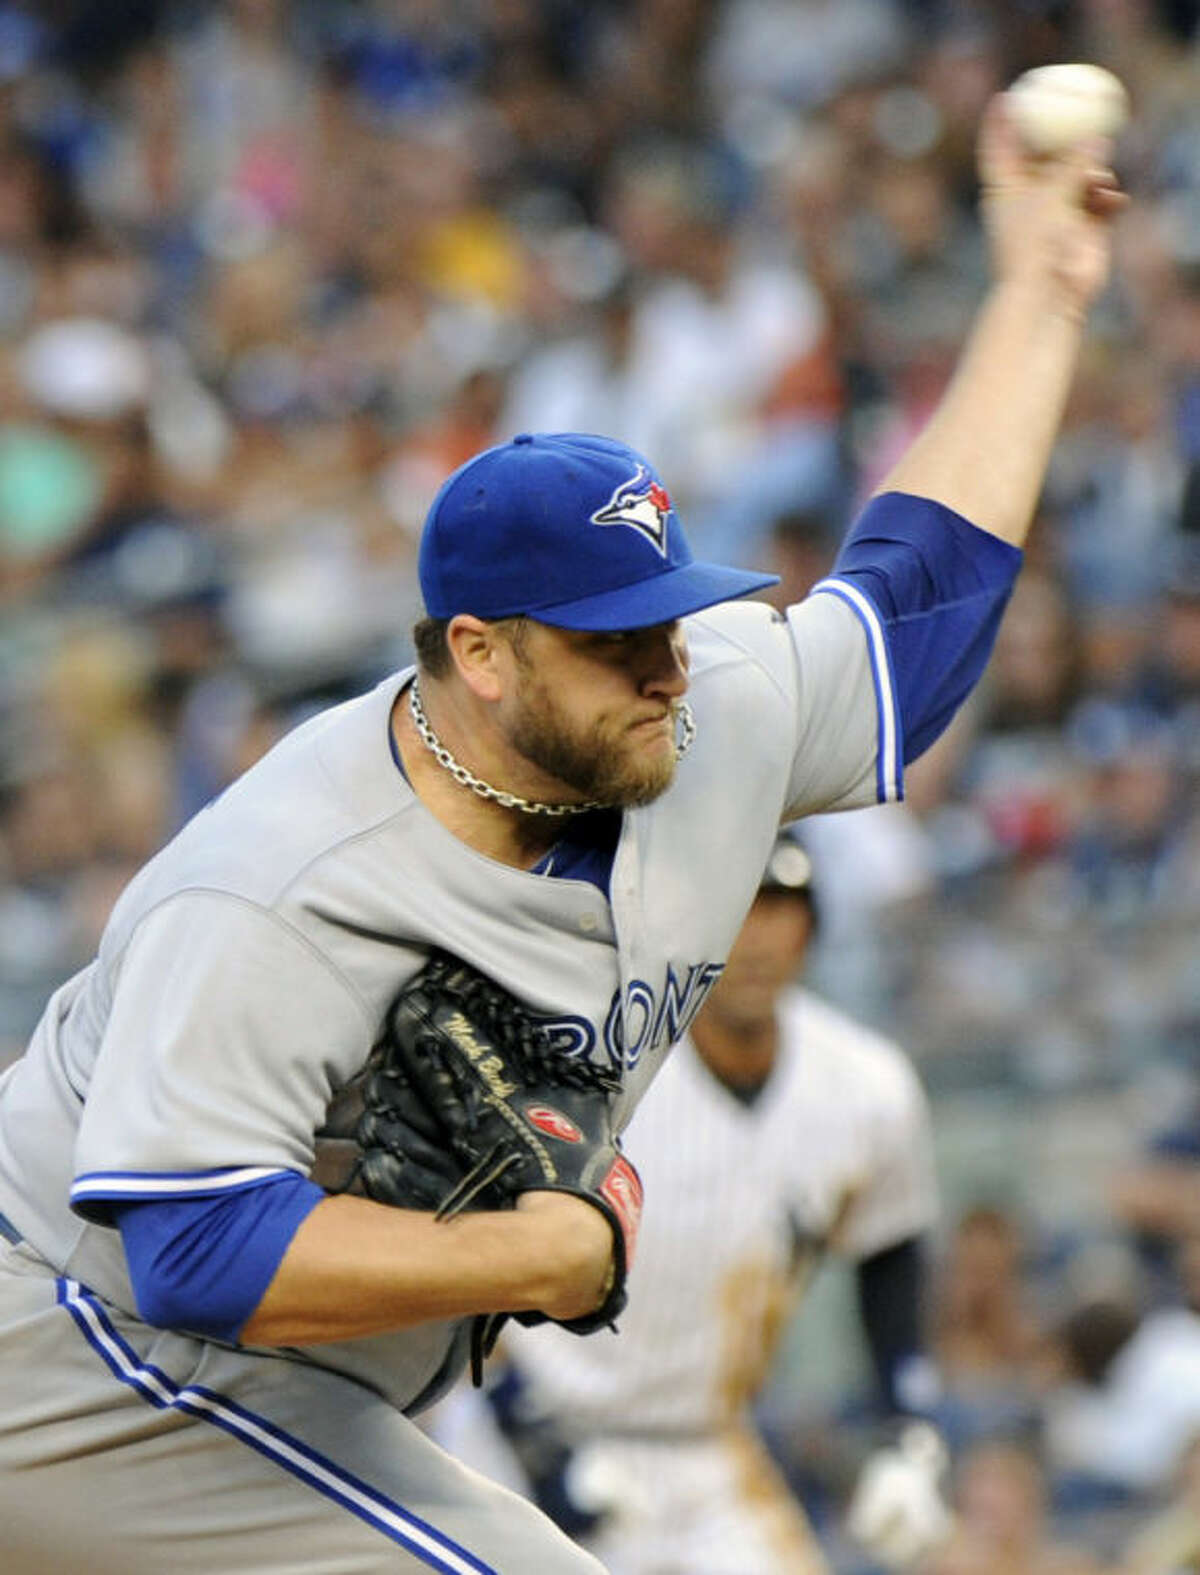 Toronto Blue Jays pitcher Mark Buehrle delivers the ball to the New York Yankees during the first inning of a baseball game Friday, July 25, 2014, at Yankee Stadium in New York. (AP Photo/Bill Kostroun)